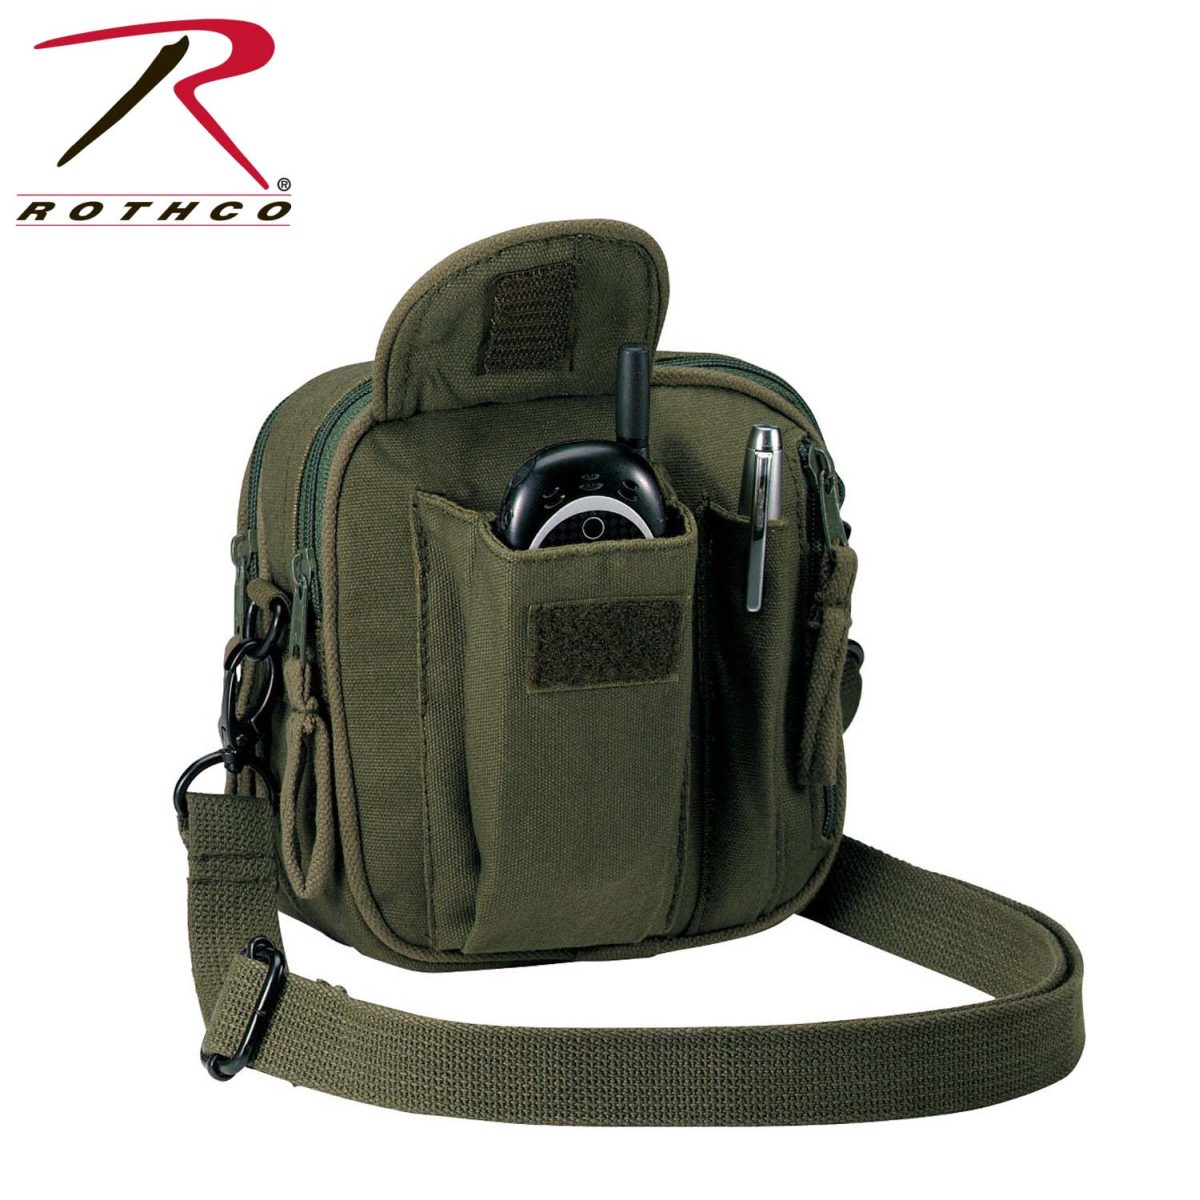 Military Duffle Bags & Cargo Bags